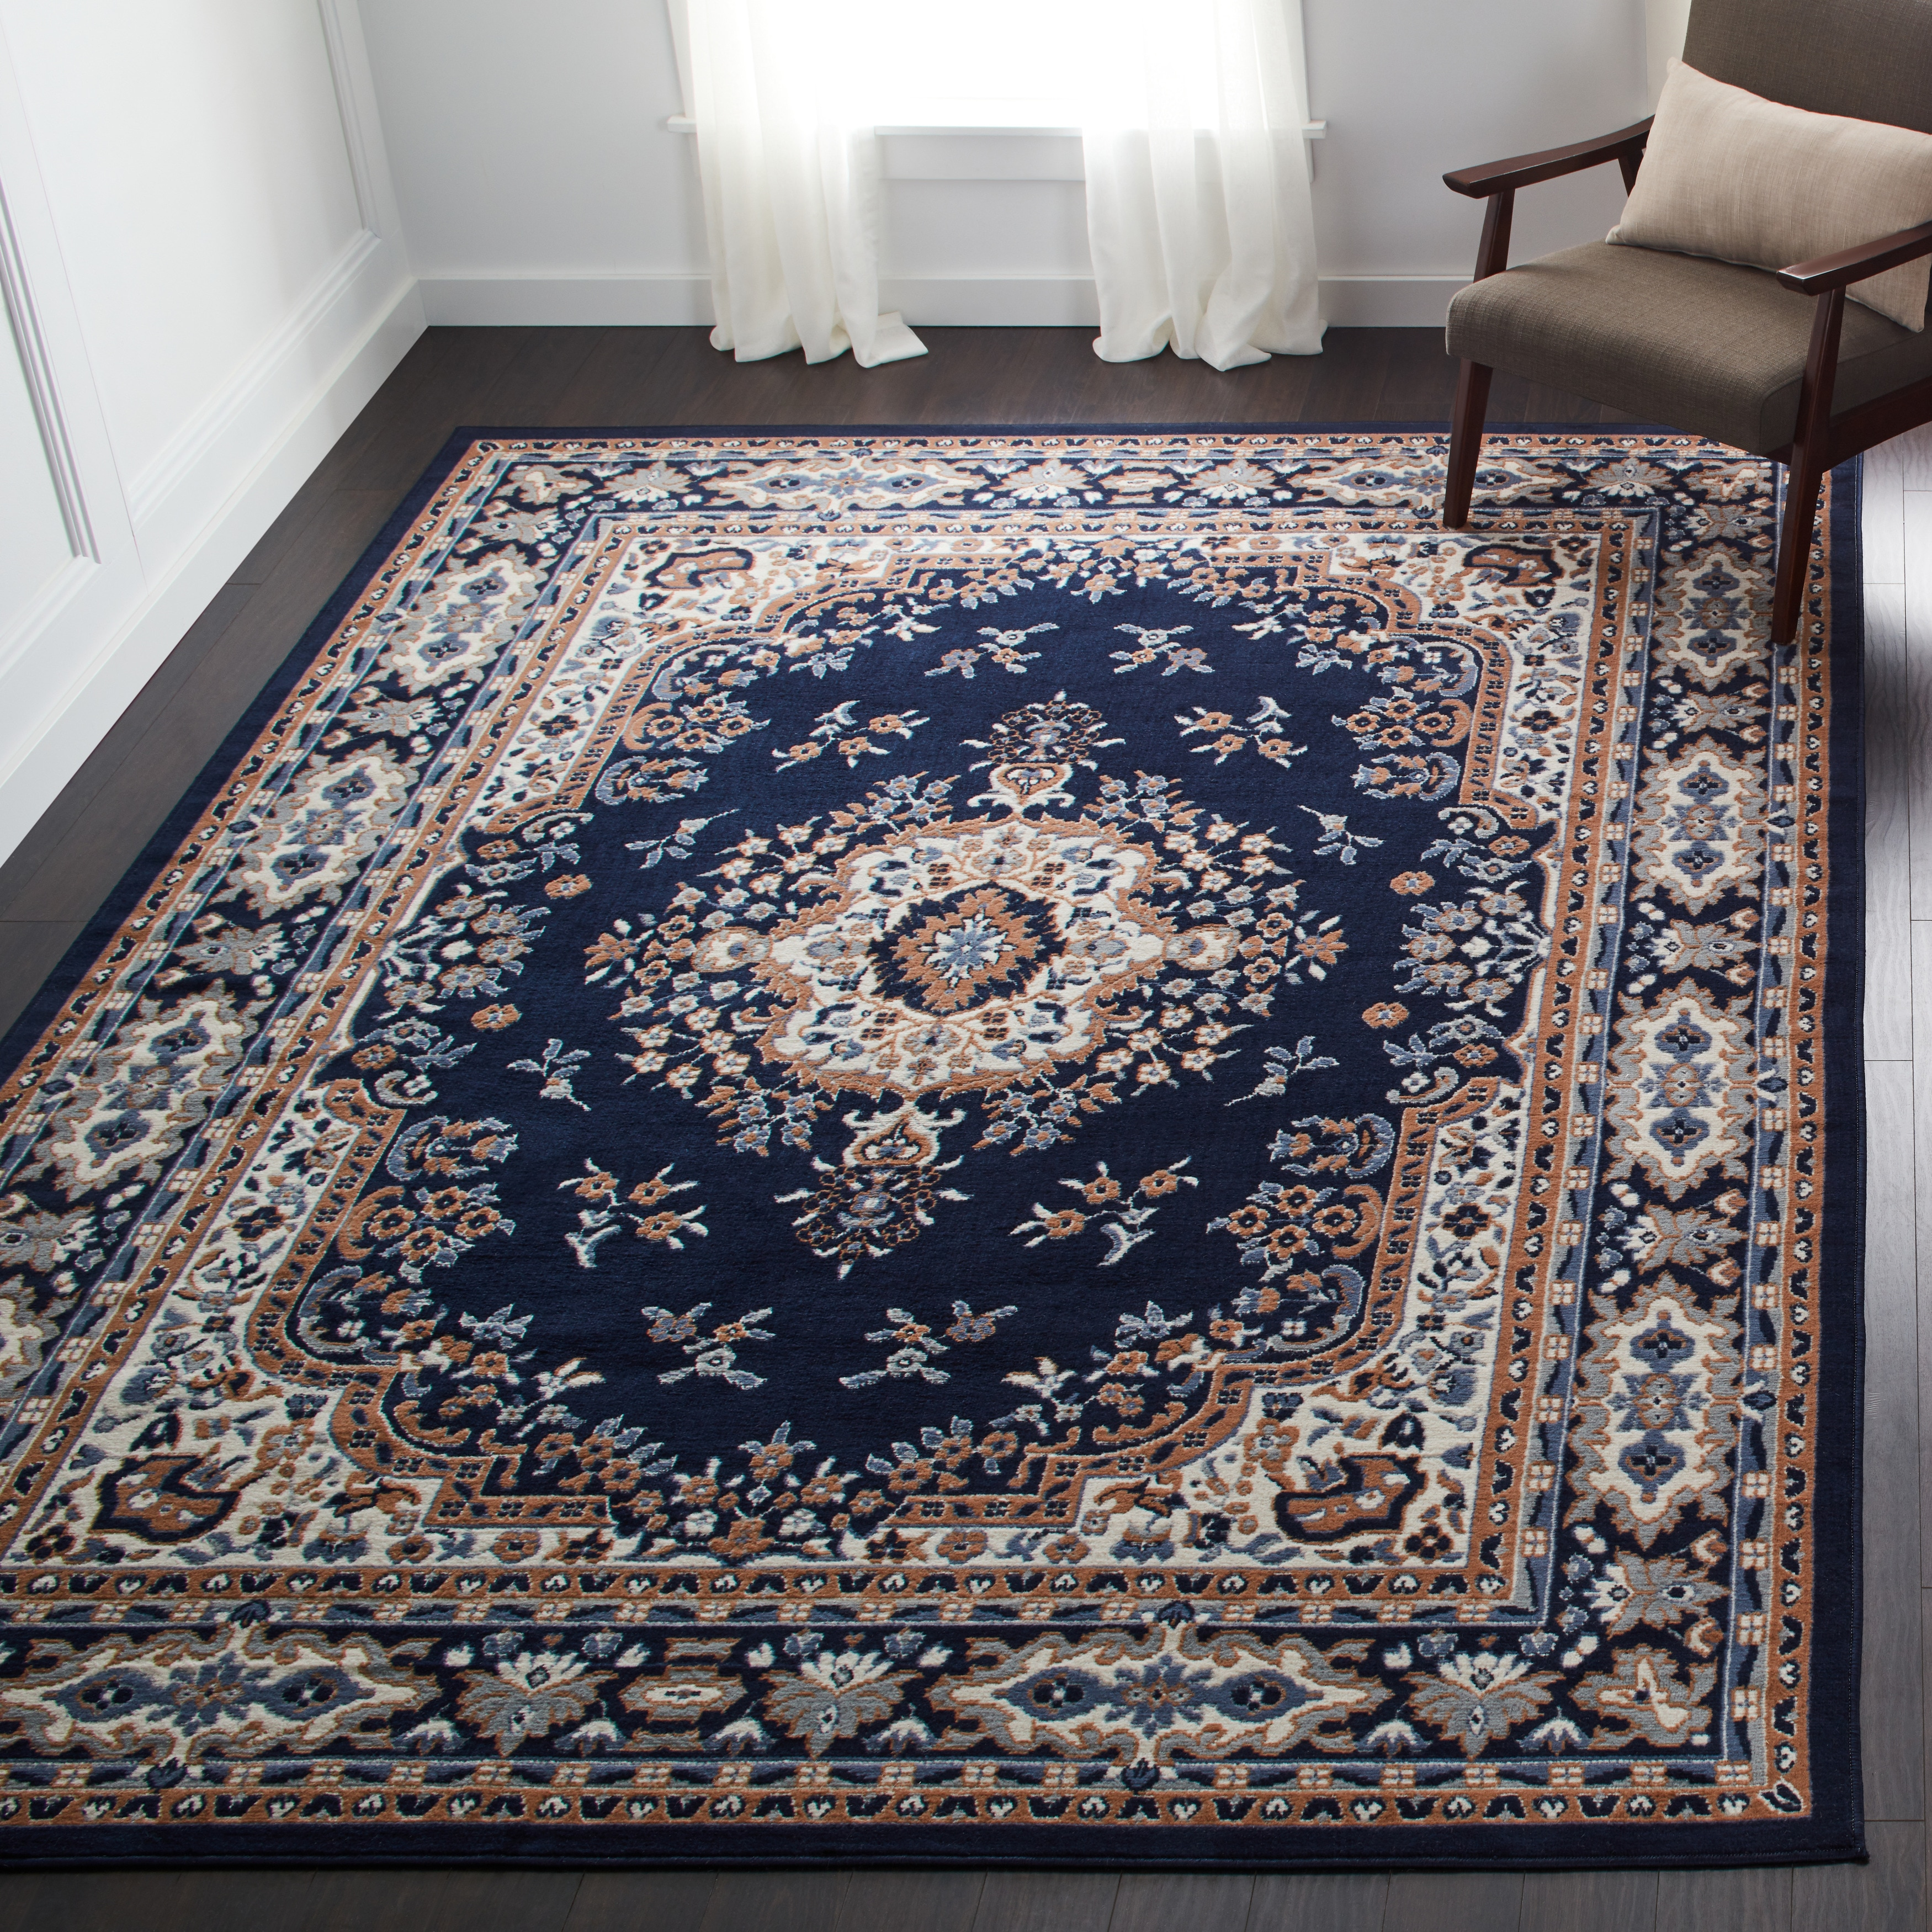 premium traditional oriental area rug - 7'8 x 10'7 - free shipping